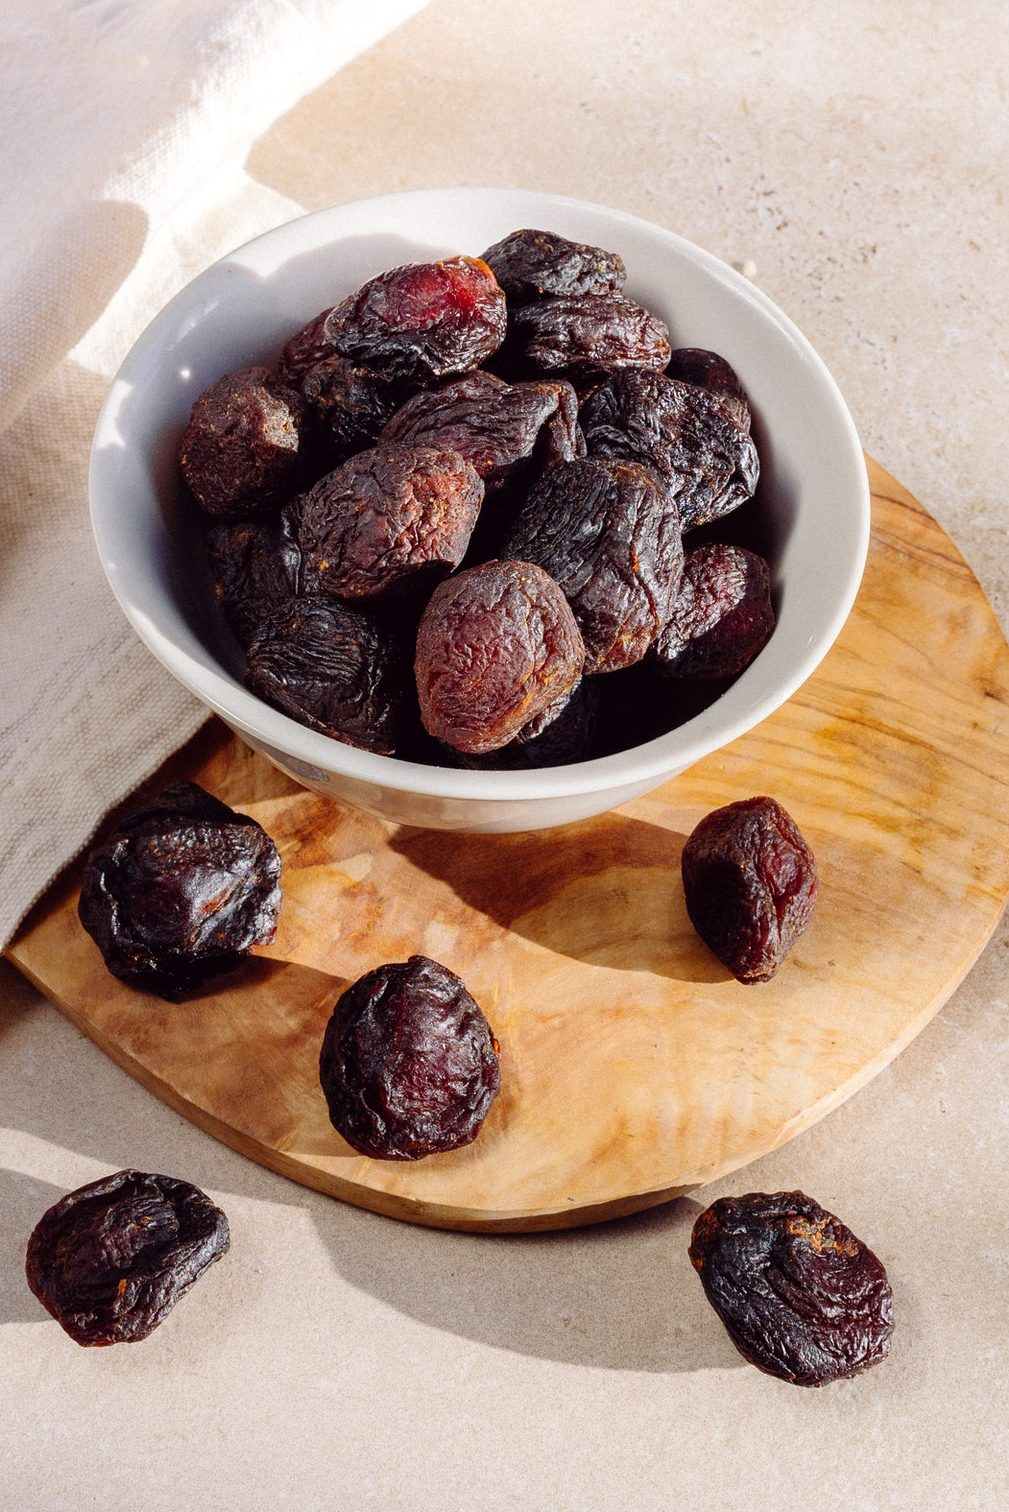 Plums are packed with potassium